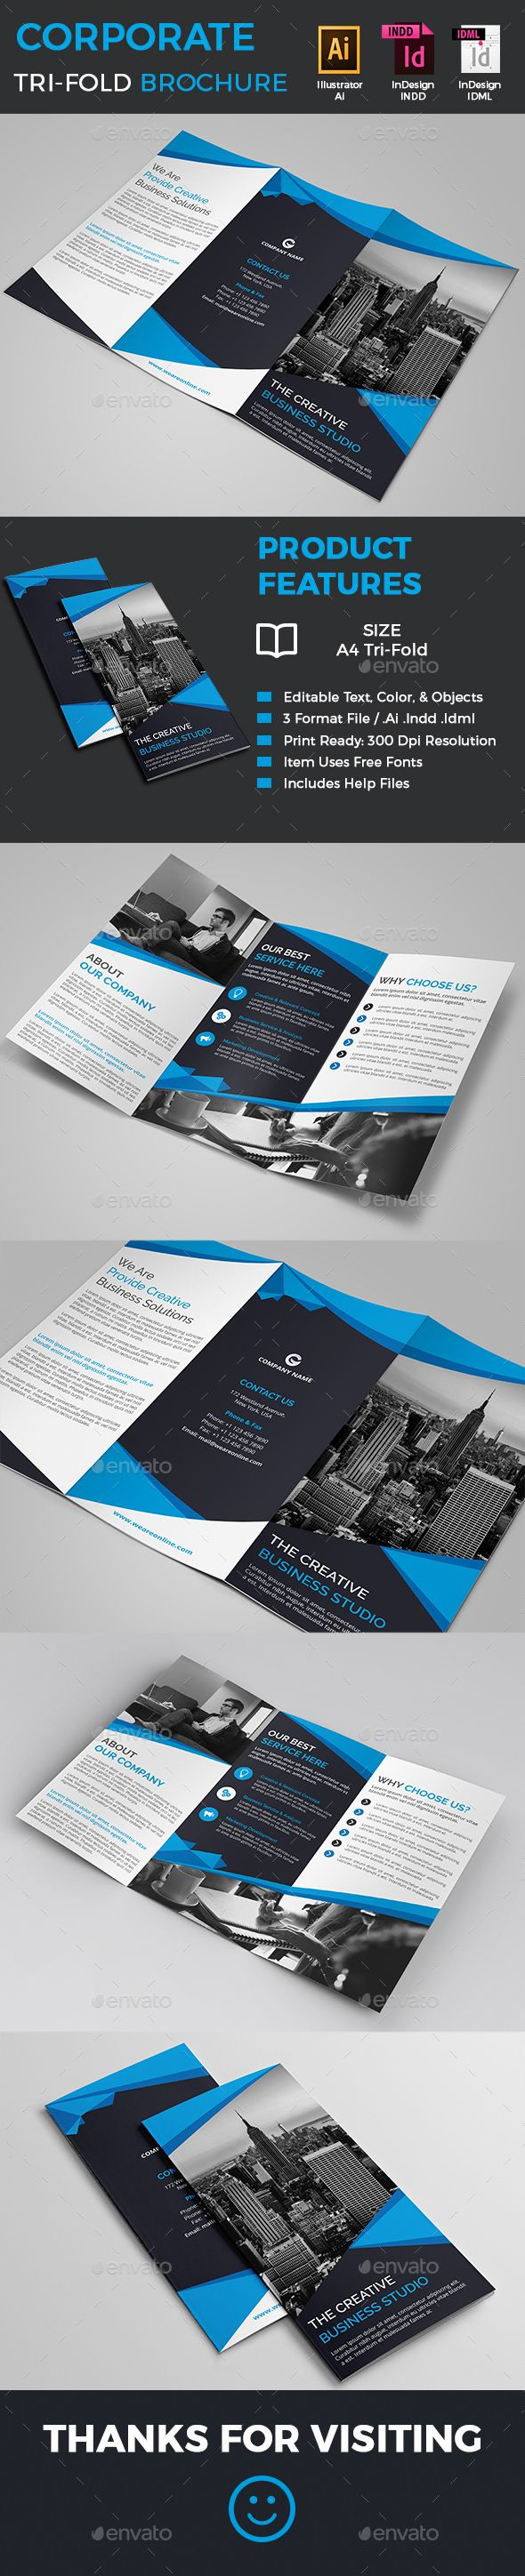 Corporate Tri Fold Brochure Template Indd Vector Ai Download Here